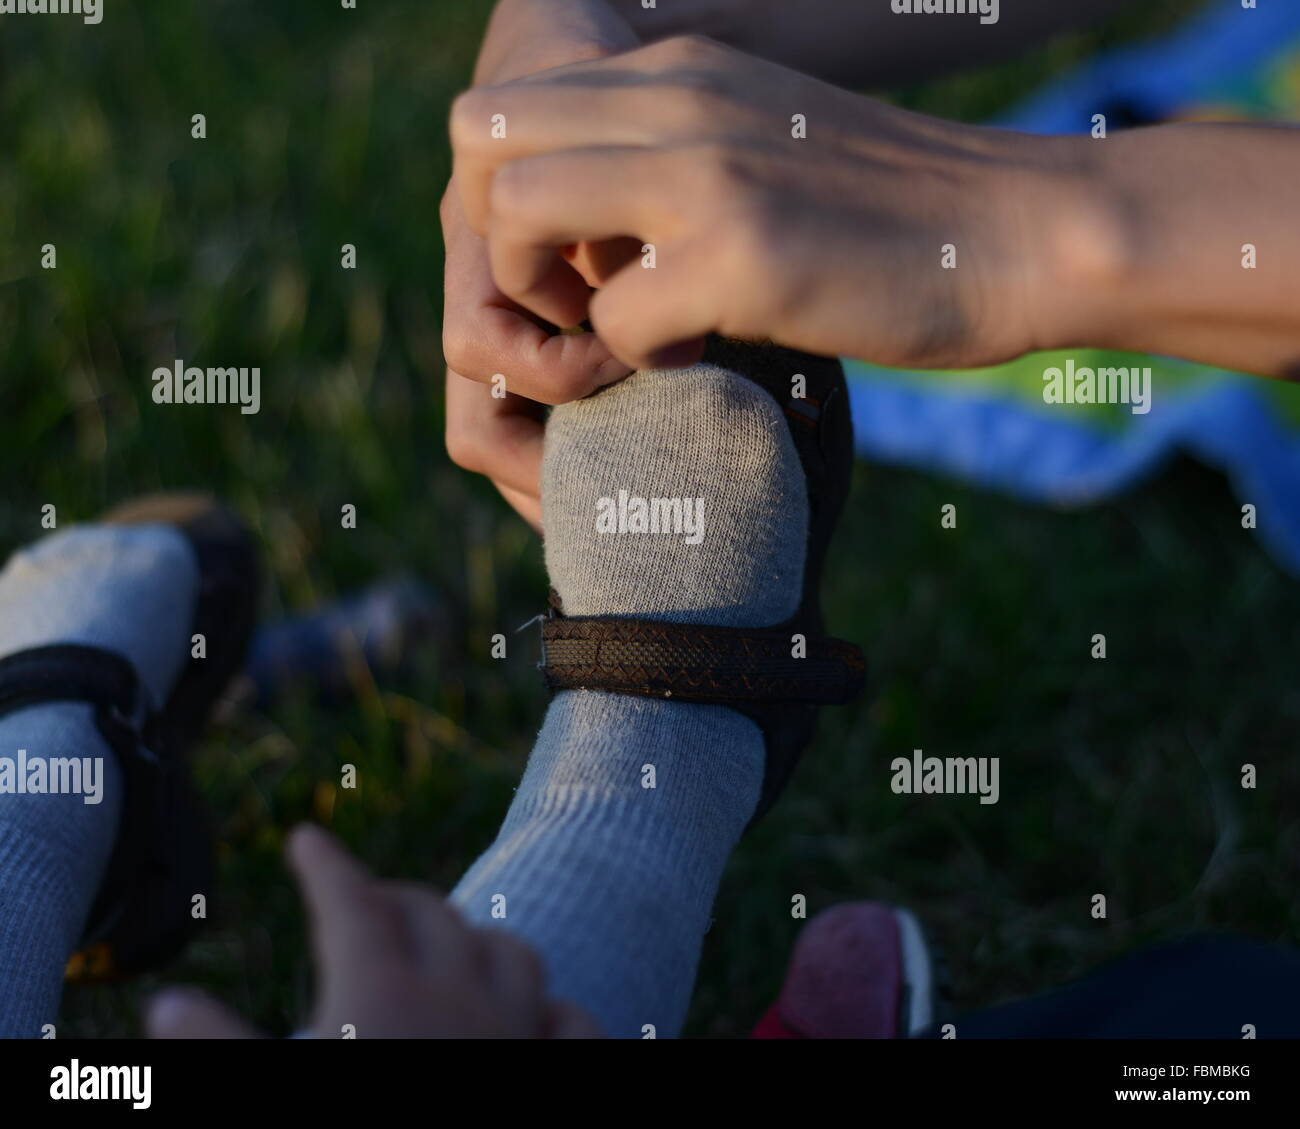 Close-Up Of Hands Helping Kid With Footwear - Stock Image